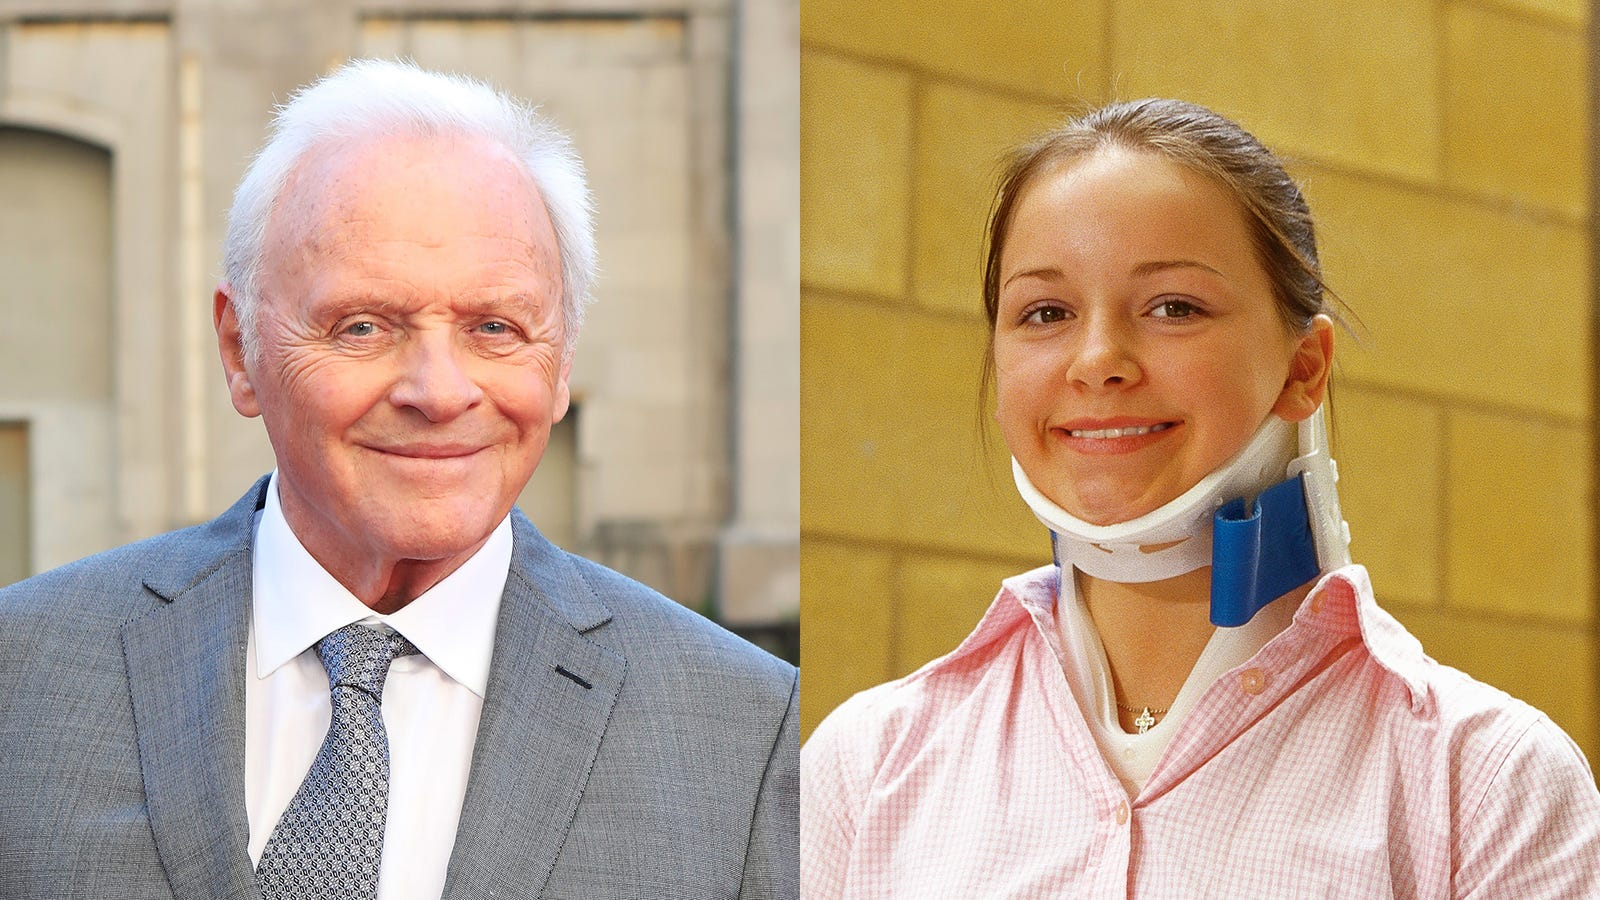 Not As Heartwarming As It Could Have Been: Anthony Hopkins Just Showed Up At This High School 8 Months Early To Ask A Girl With A Temporary Neck Brace To Prom